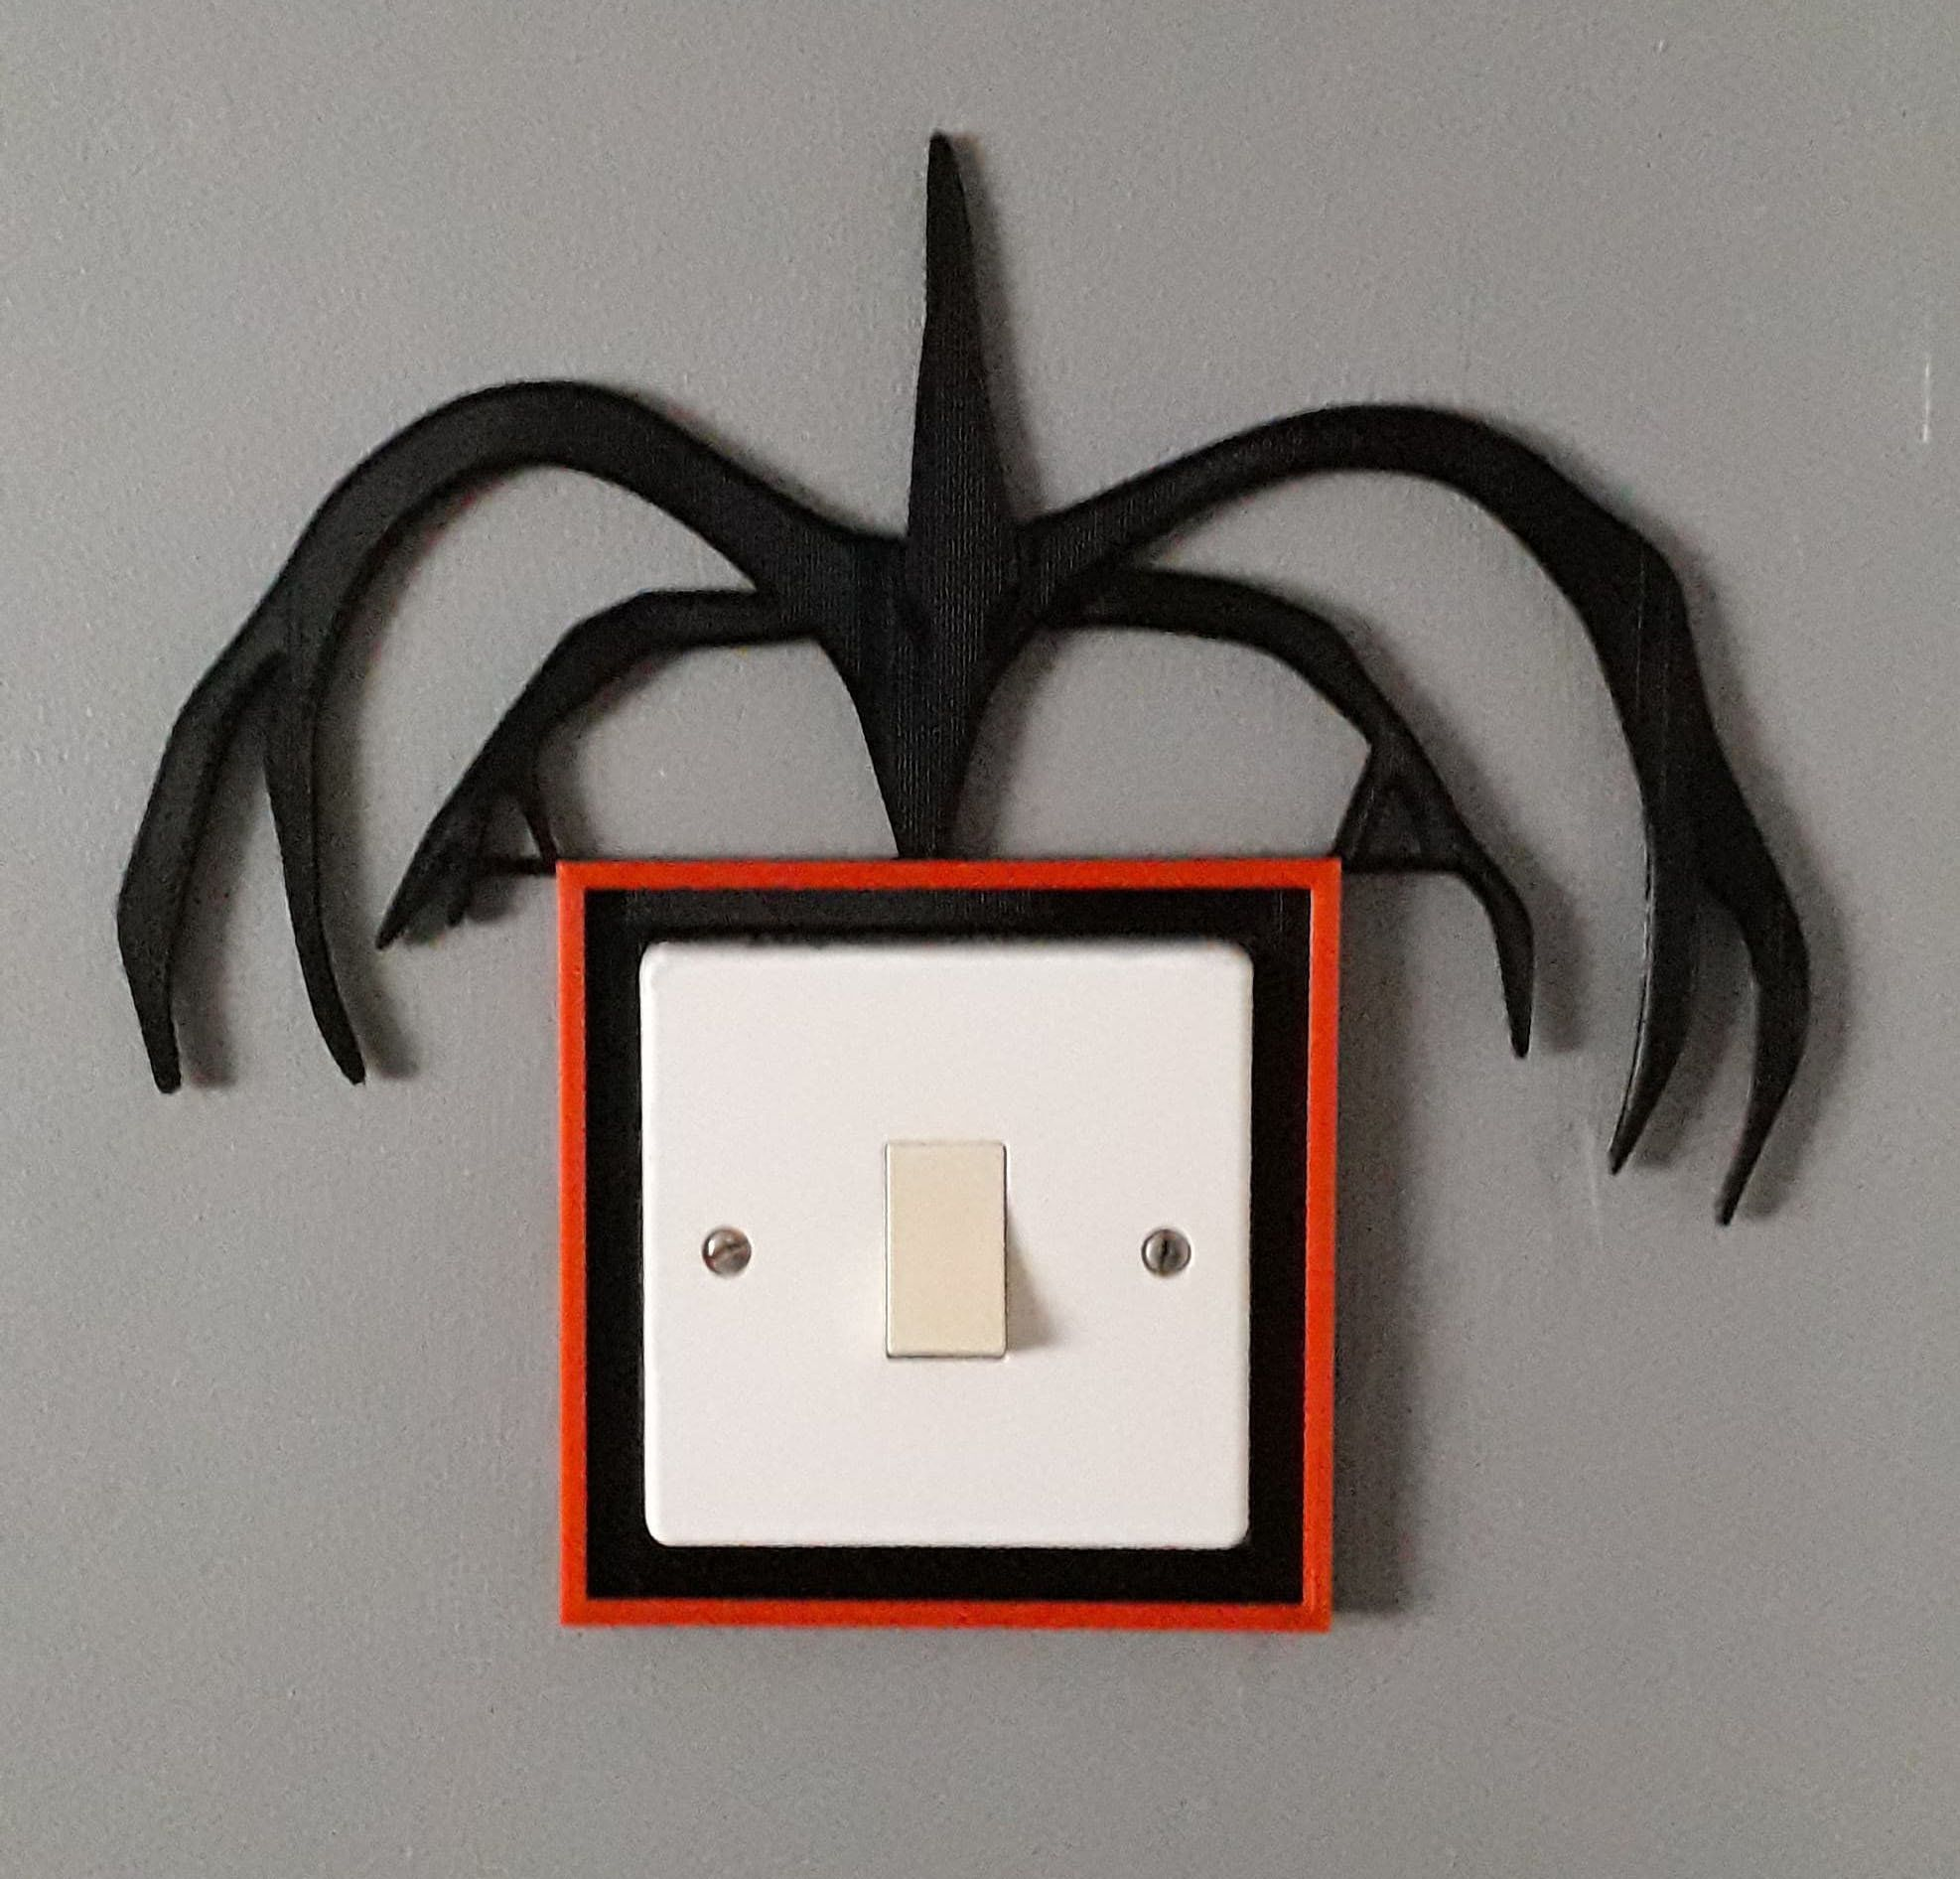 Harry Potter Light Switch Surround